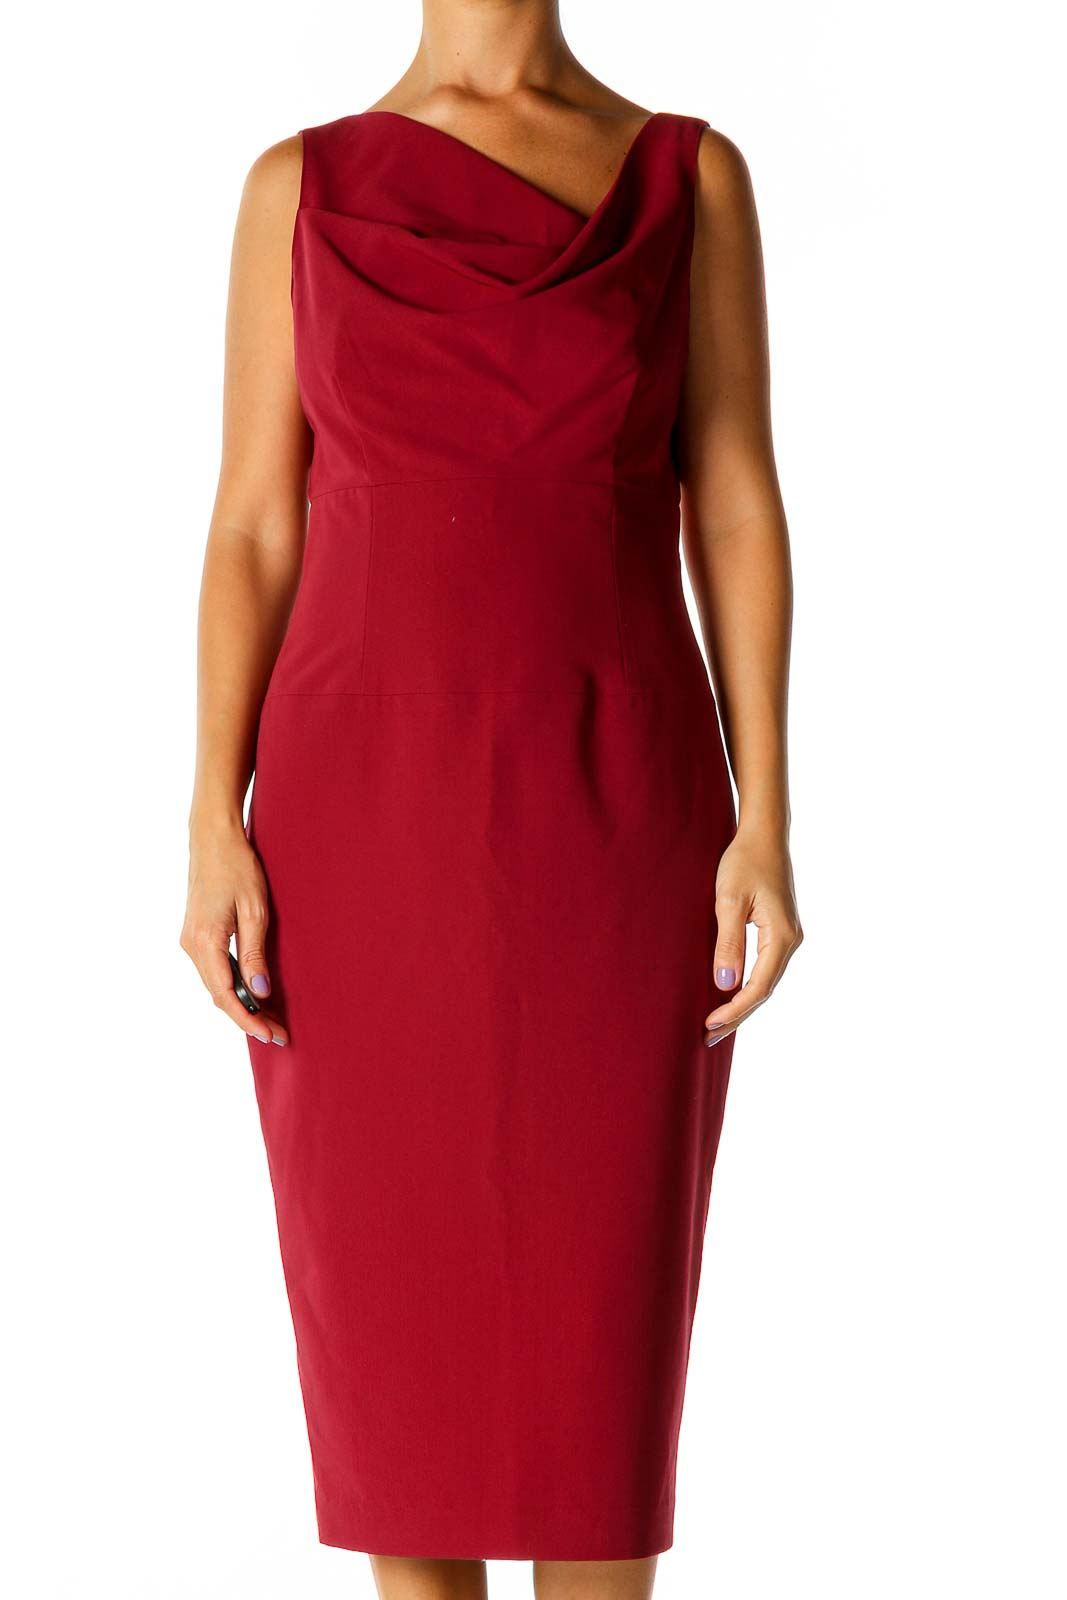 Red Solid Cocktail Sheath Dress Front